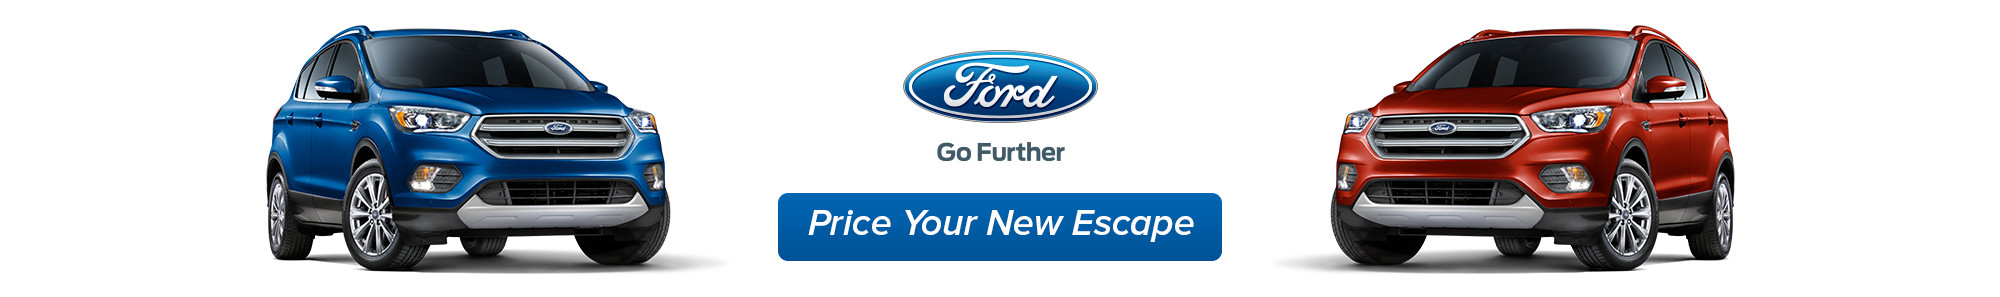 2017 Ford Escape in Catskill